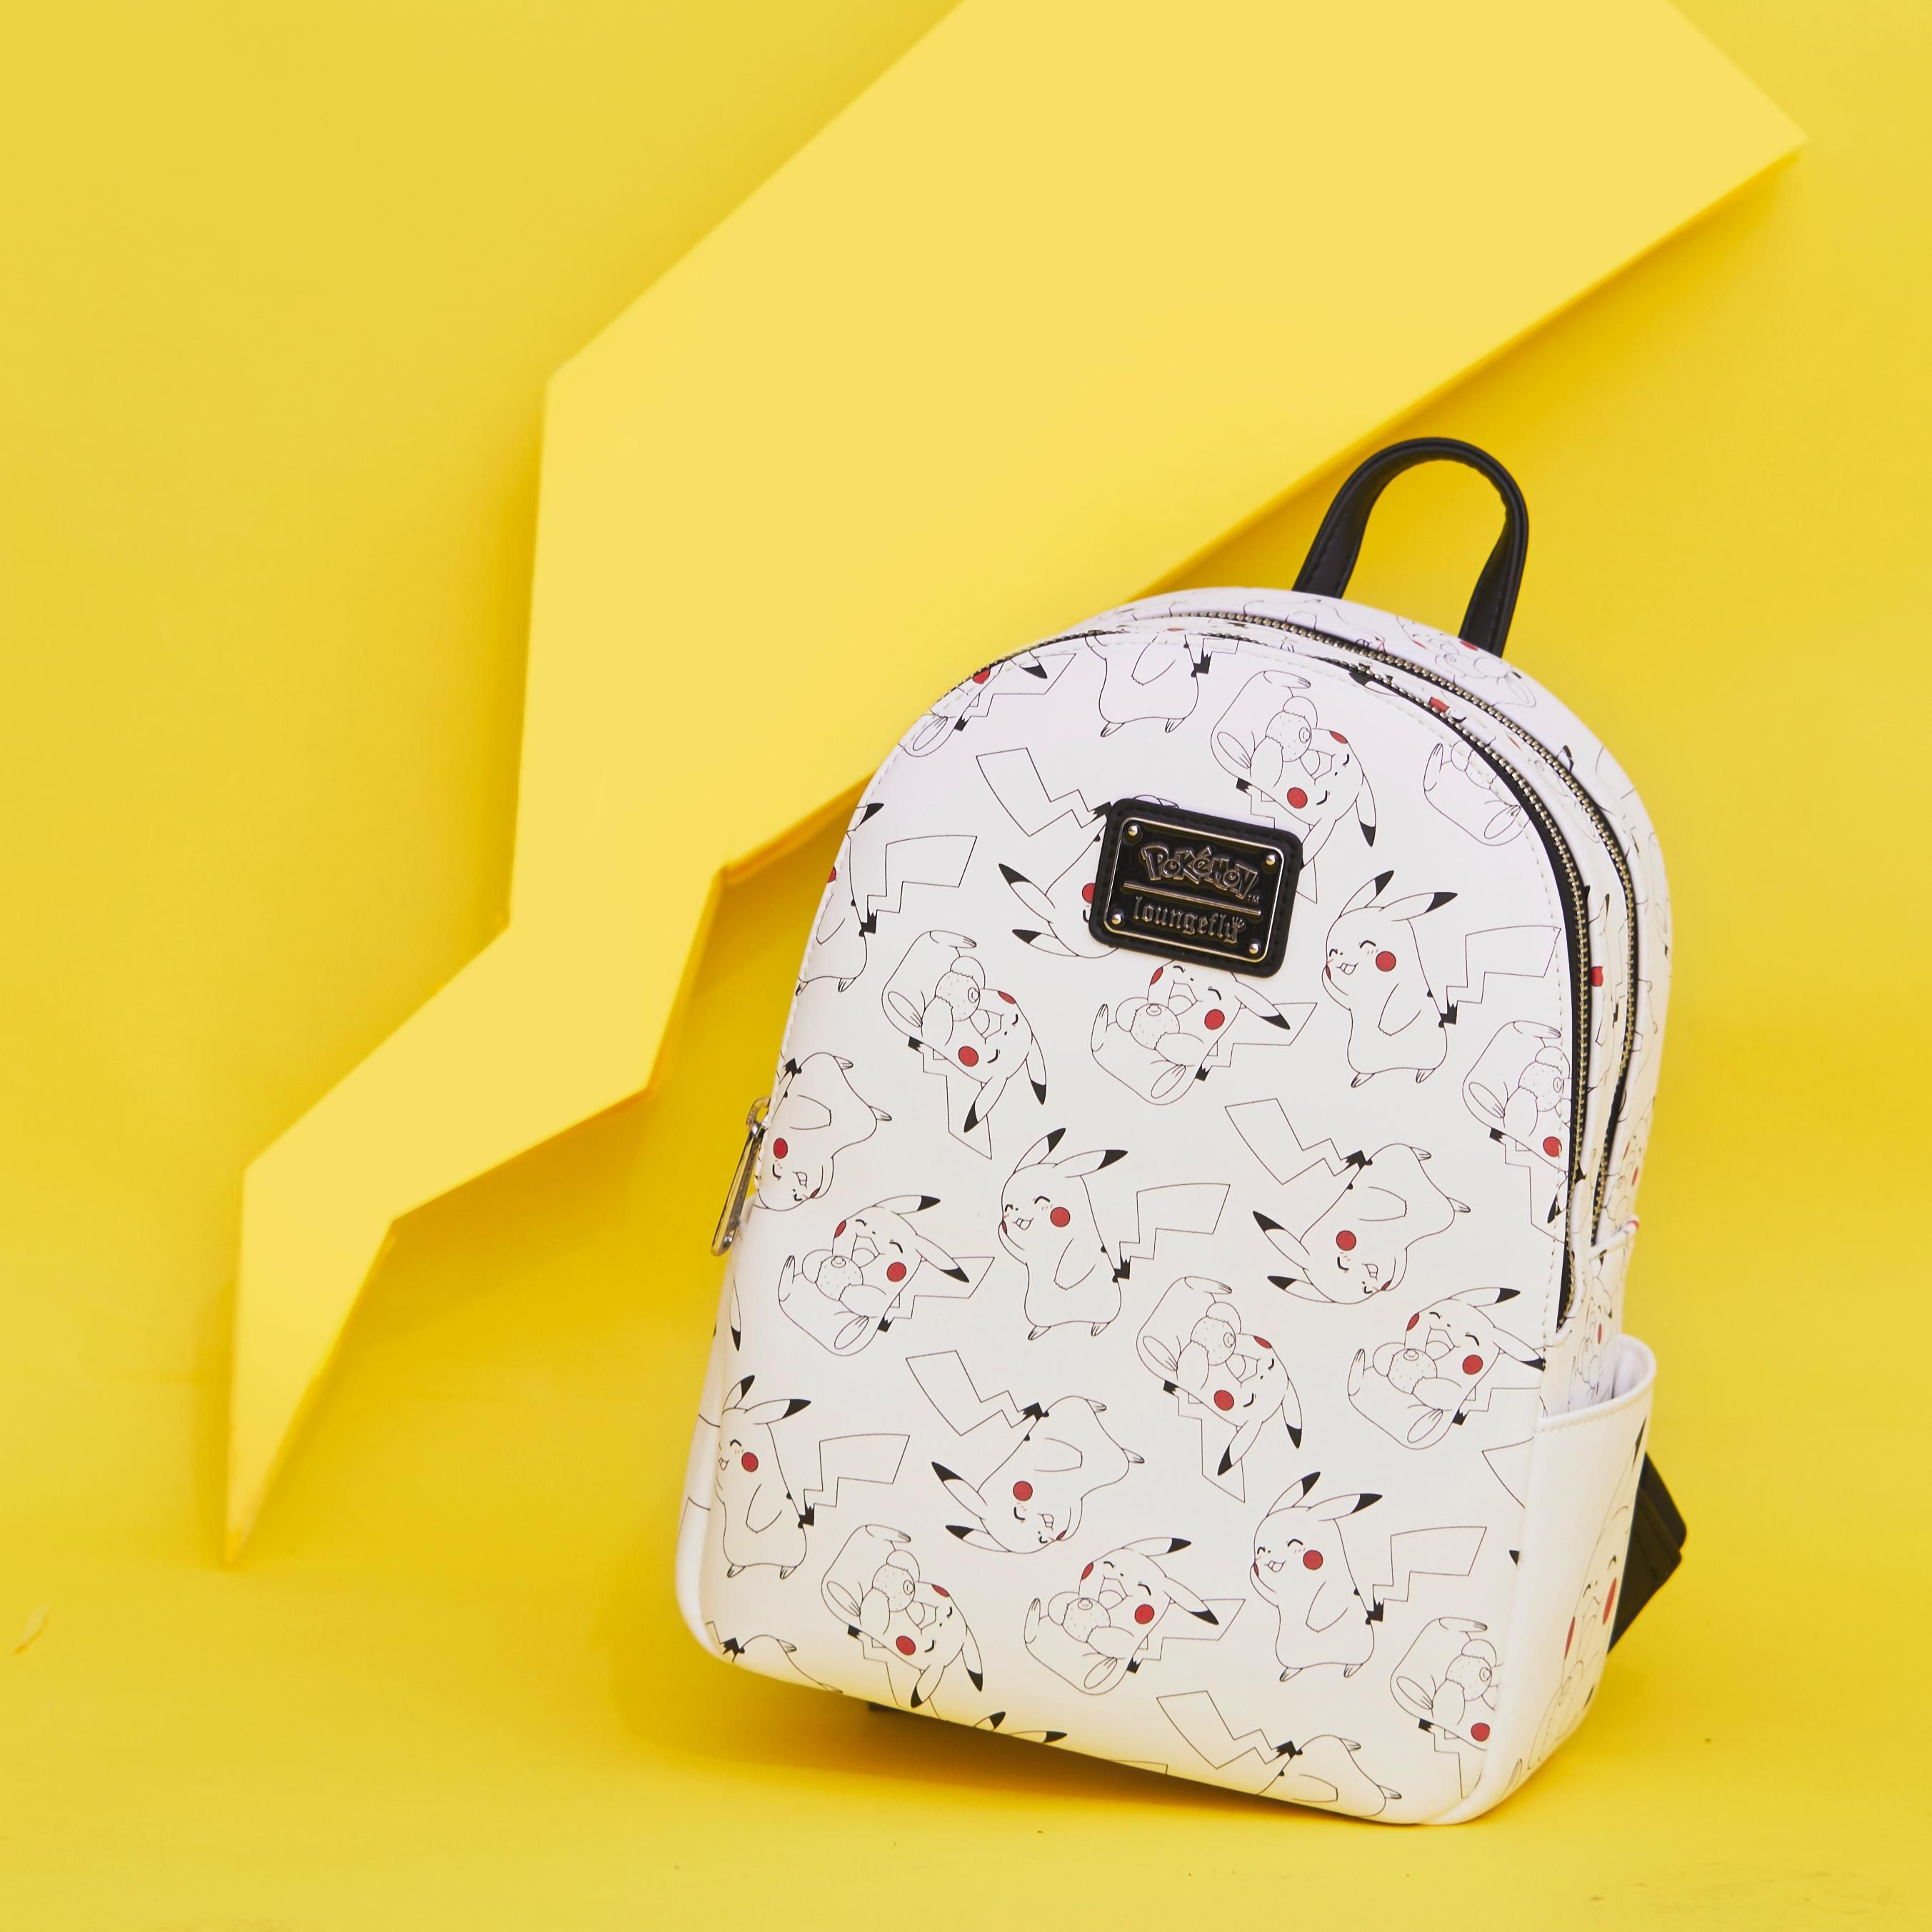 Pikachu Mini Backpack - BoxLunch Exclusive